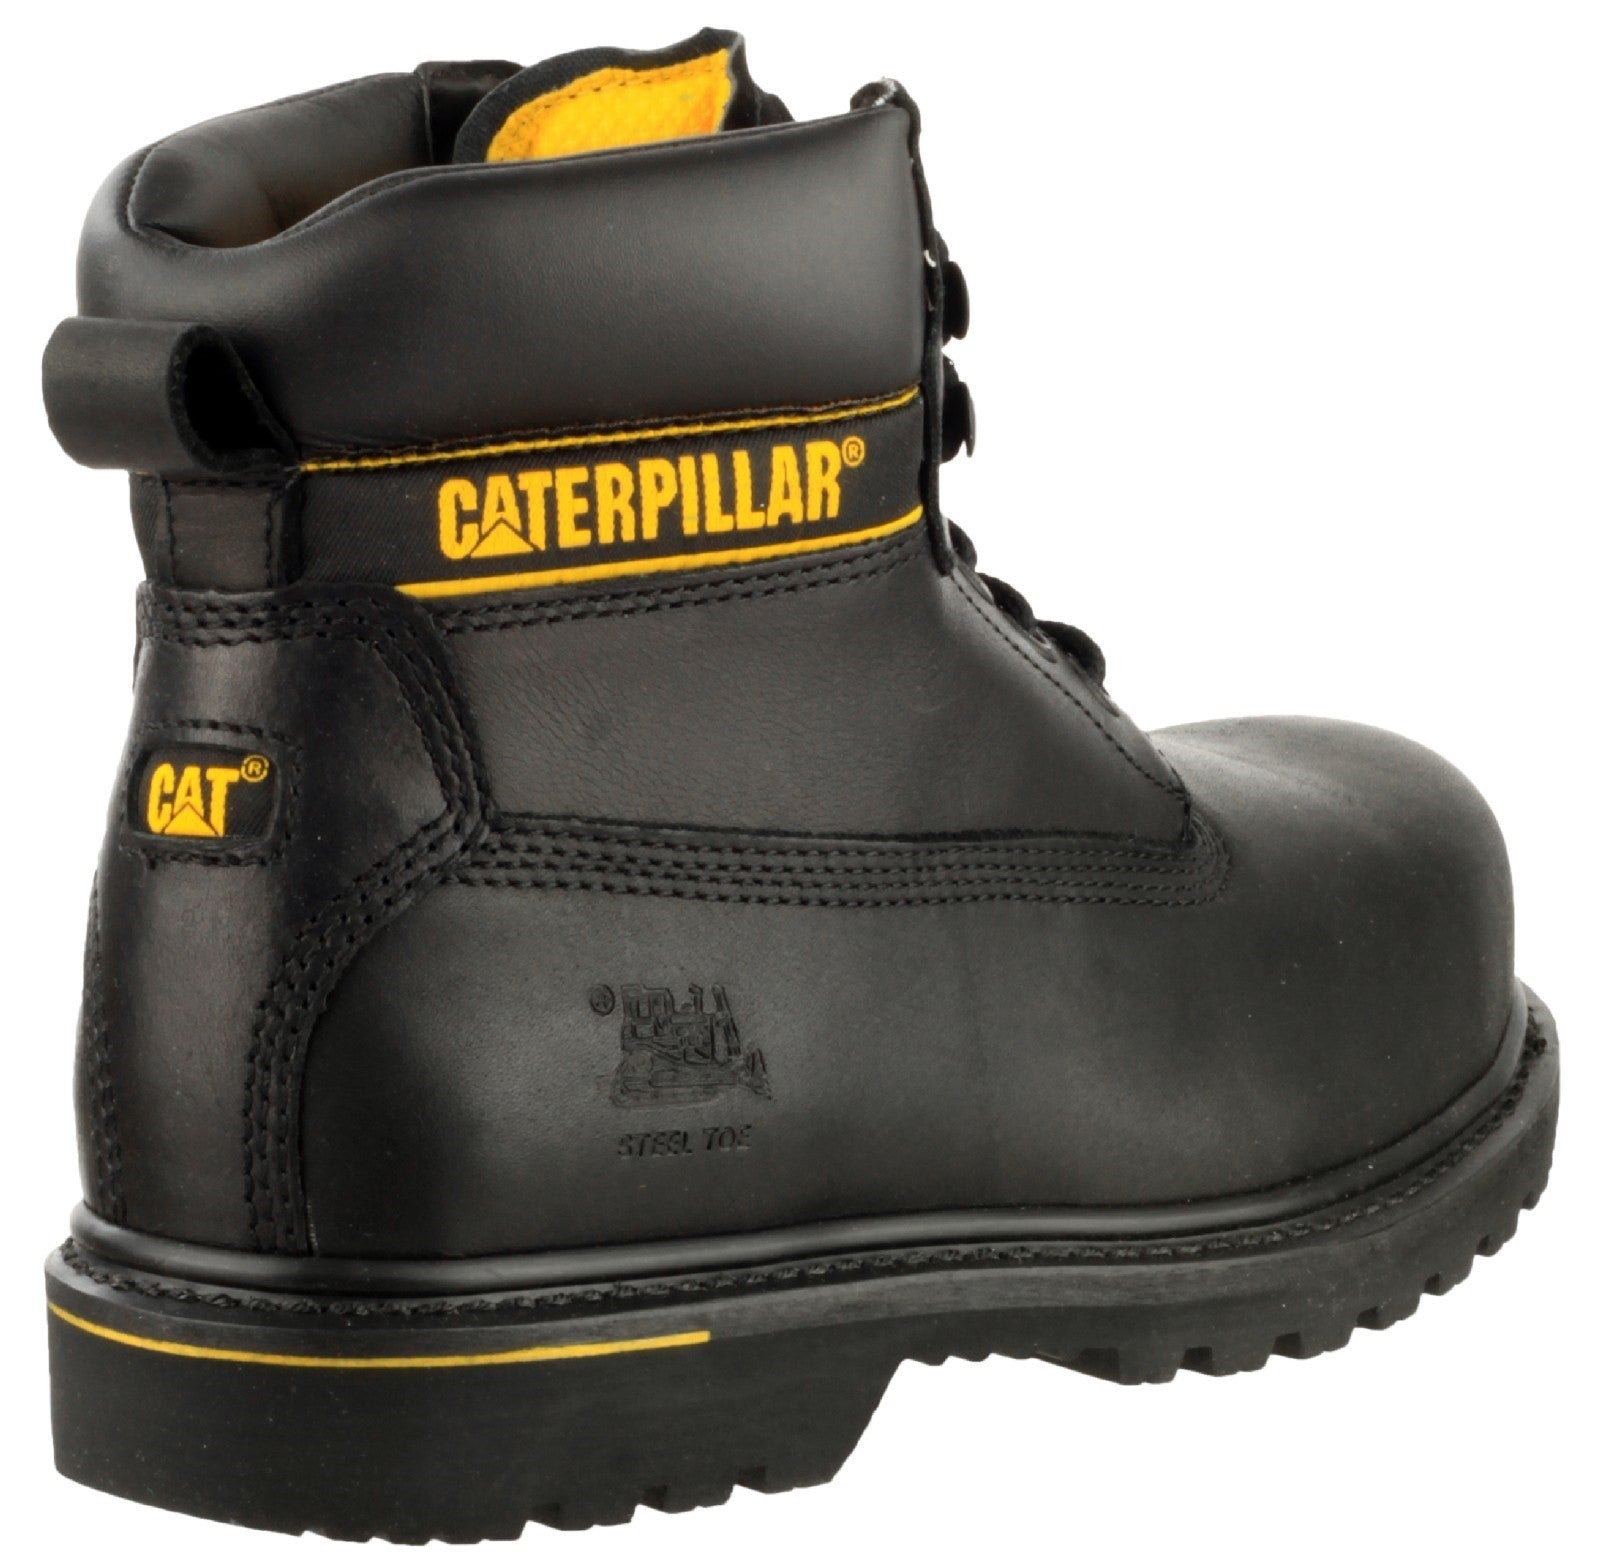 Caterpillar Men's Holton Safety Boot Black 16105